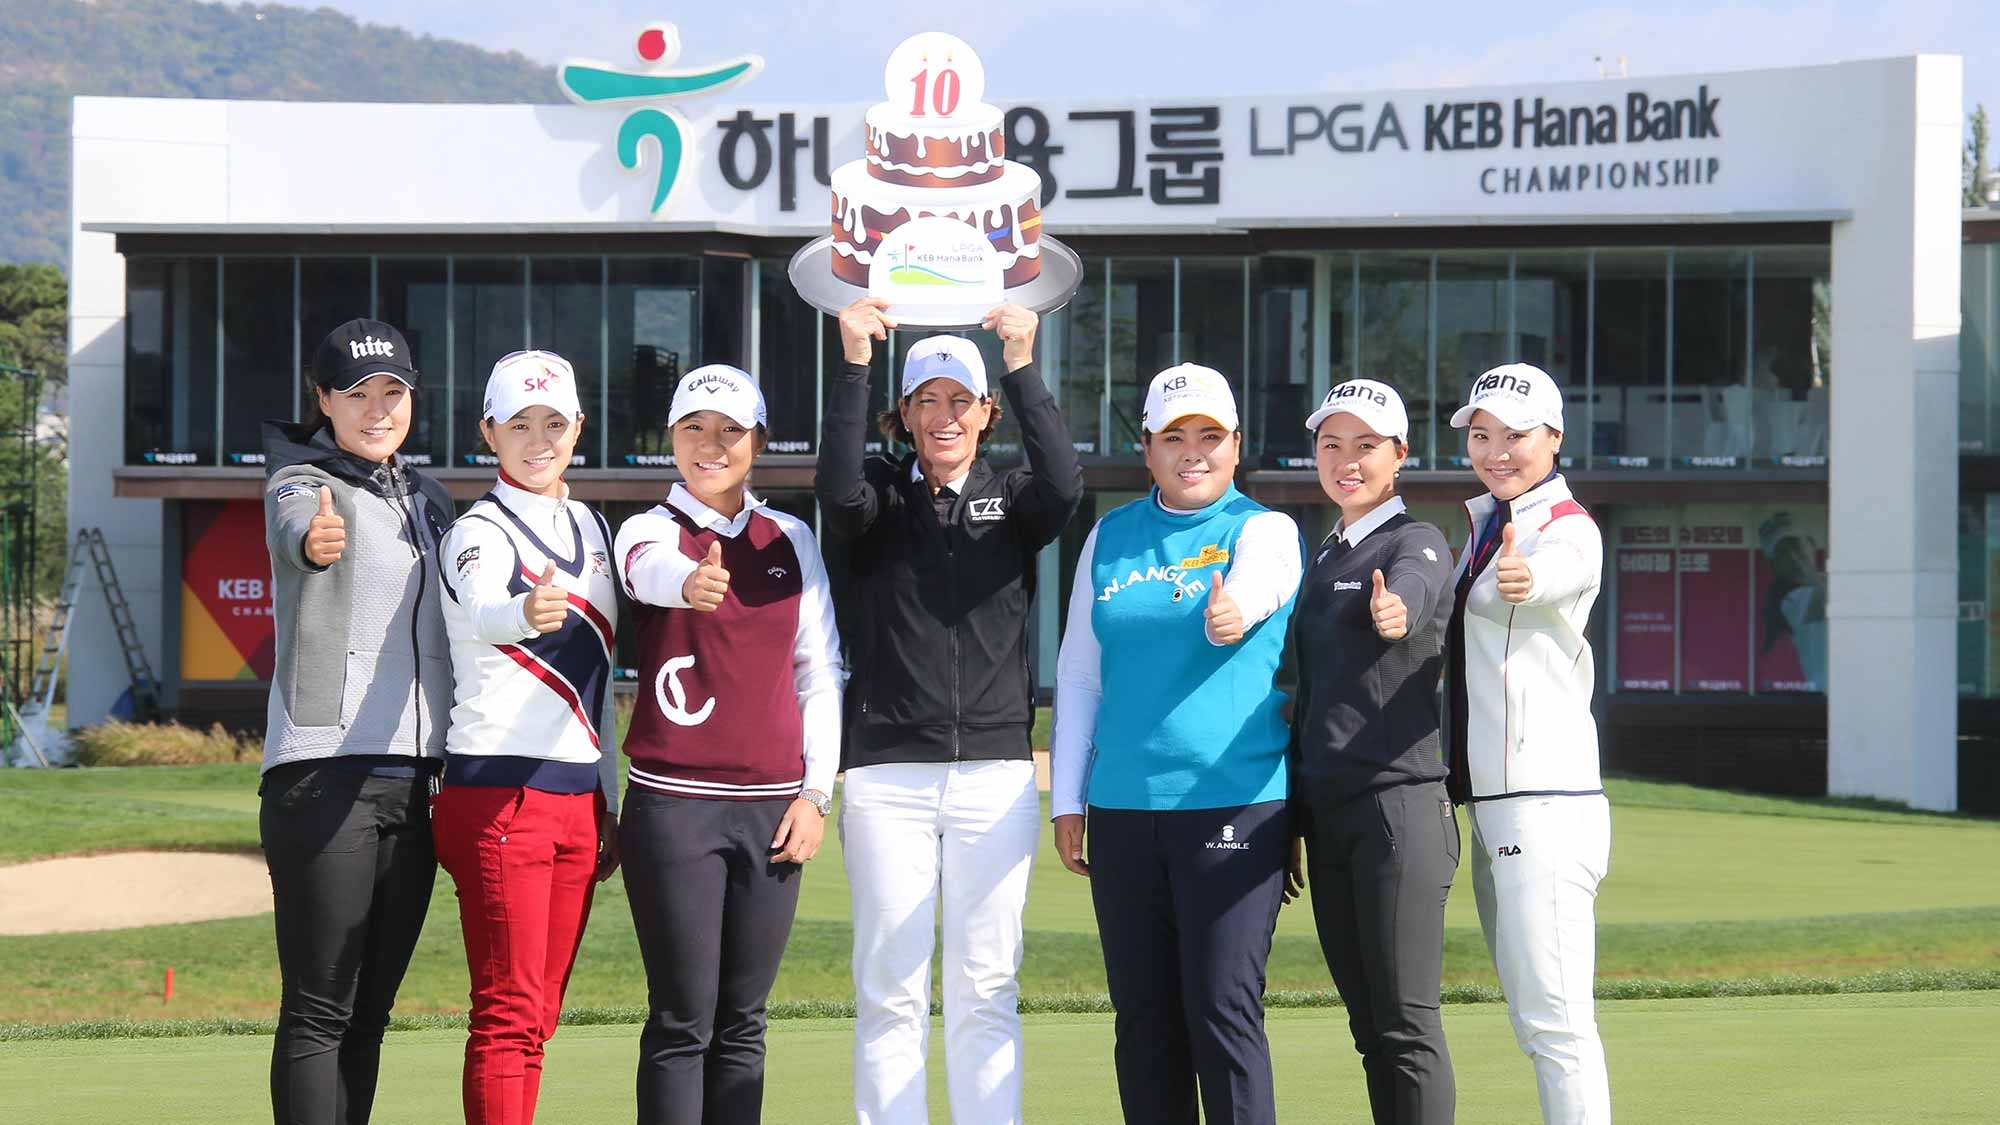 (From Left To Right) In Gee Chun, Na Yeon Choi, Lydia Ko, Juli Inkster, Inbee Park, Minjee Lee and So Yeon Ryu During Photocall at LPGA KEB Hana Bank Championship